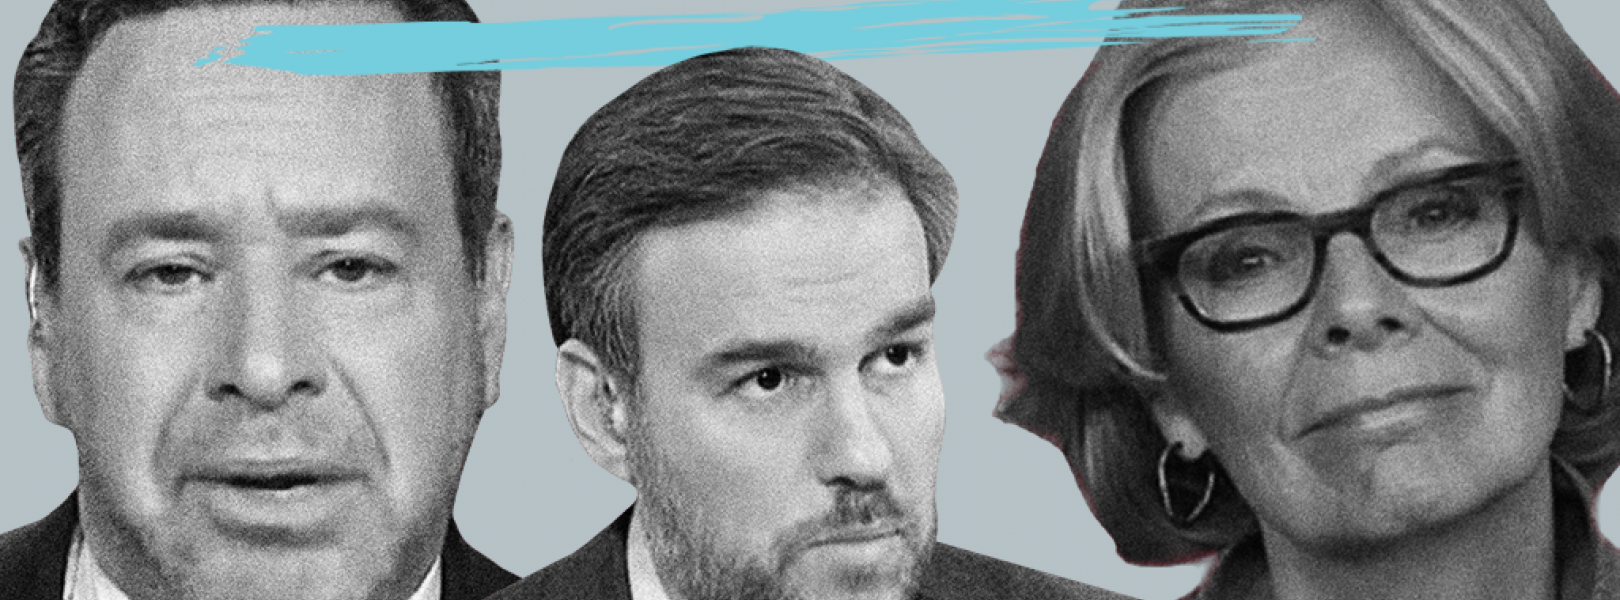 David Frum, Bret Stephens, and Peggy Noonan